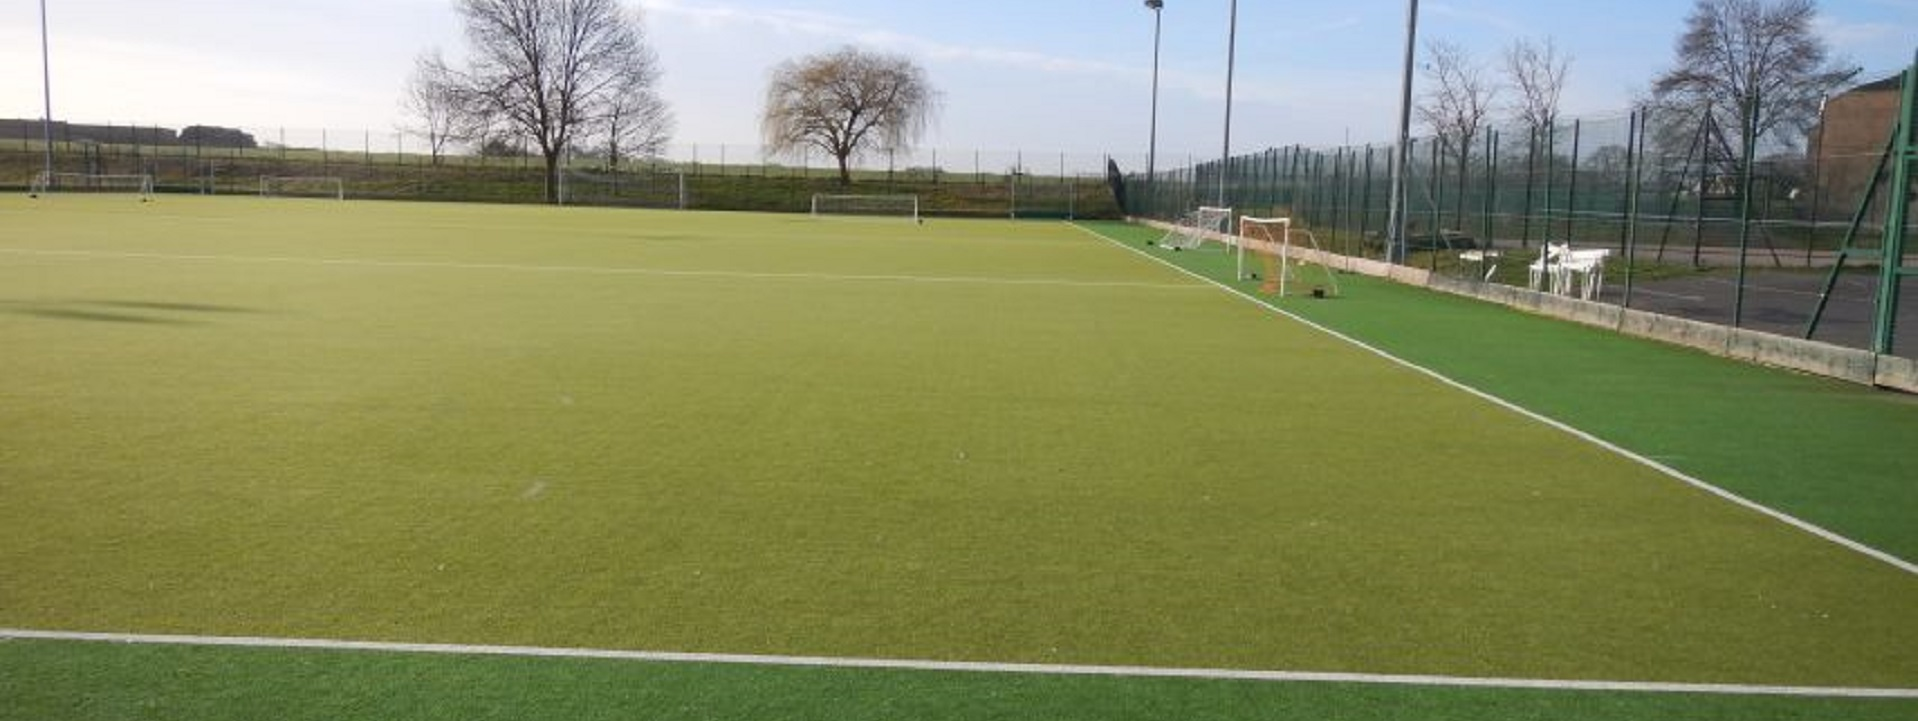 Hire our floodlit astro pitch...